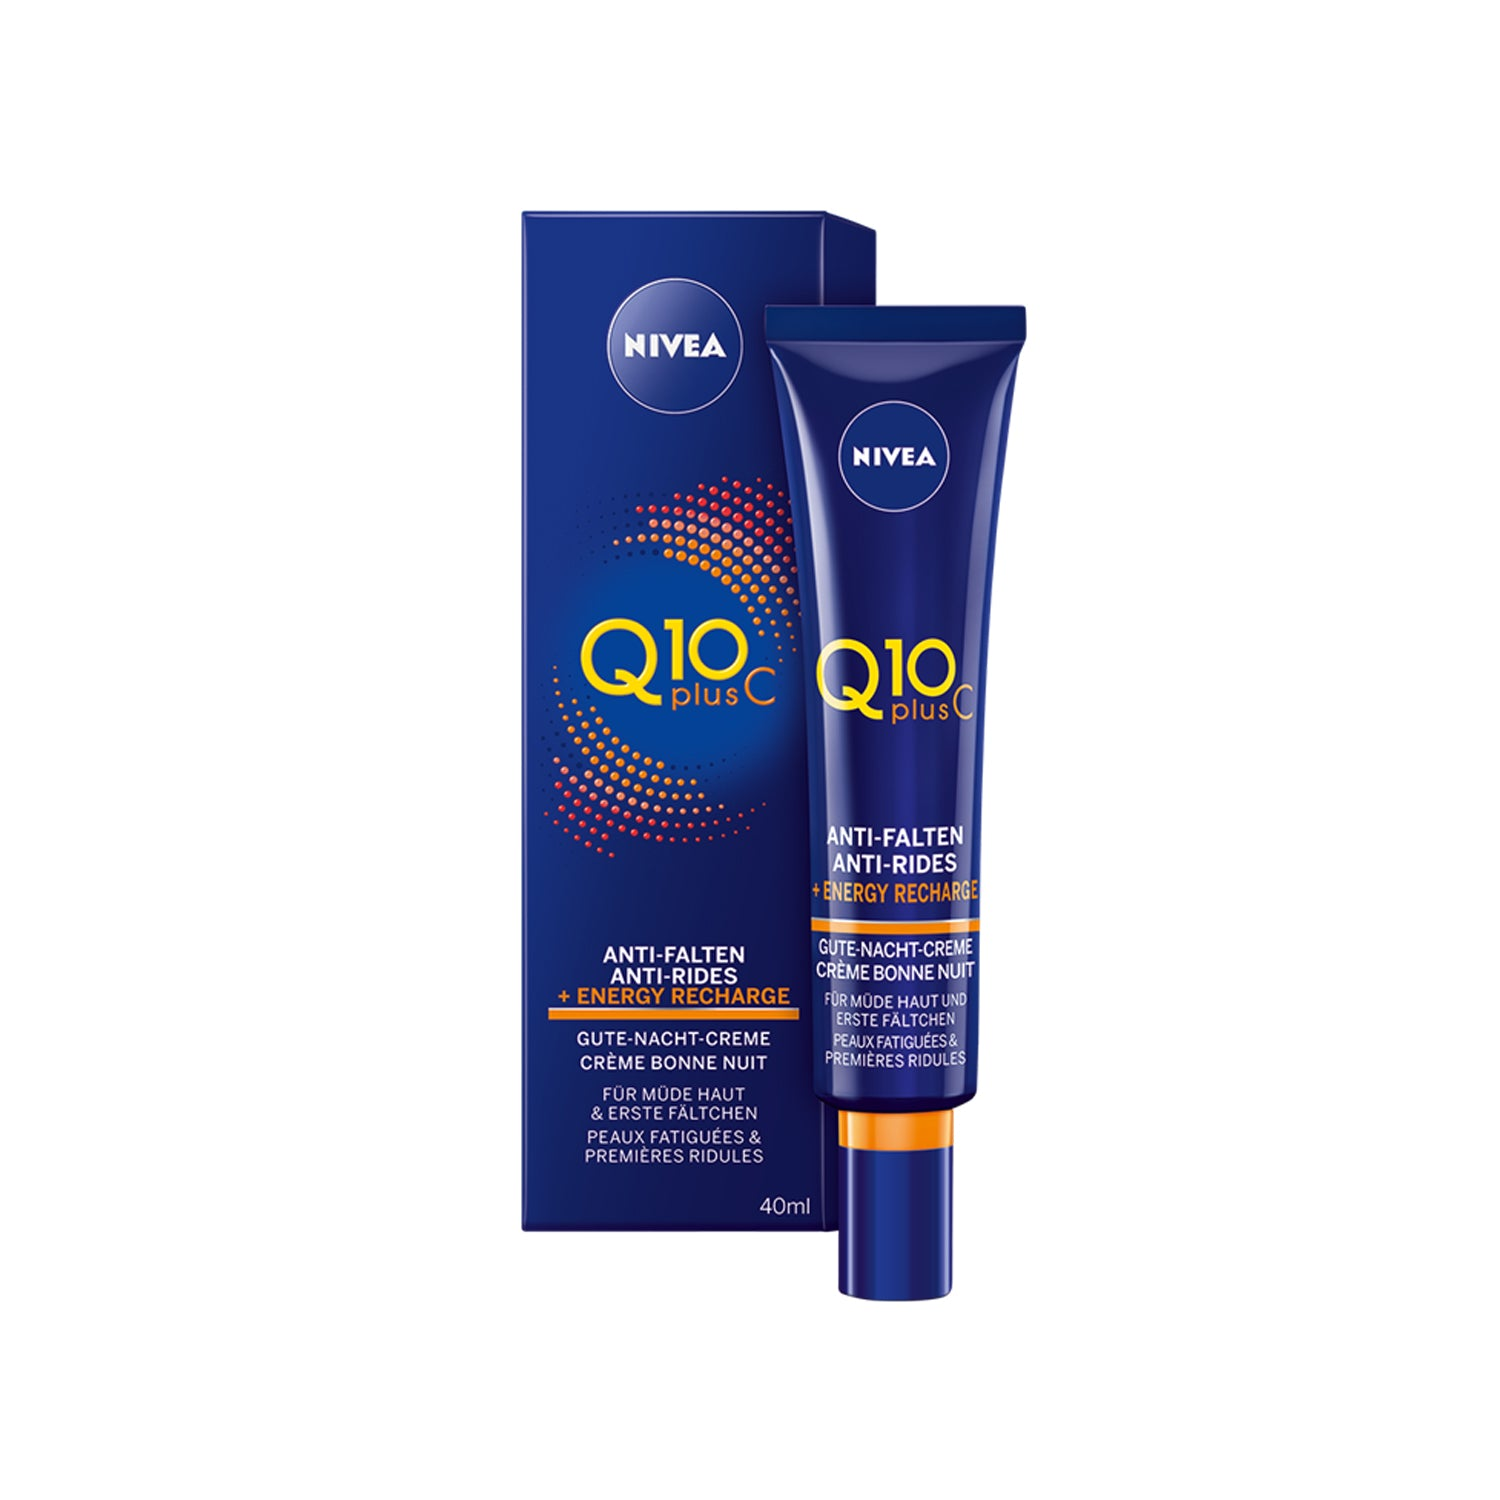 Night Care Good Night Care Q10 Plus C Anti-Wrinkle + Energy Recharge by Nivea